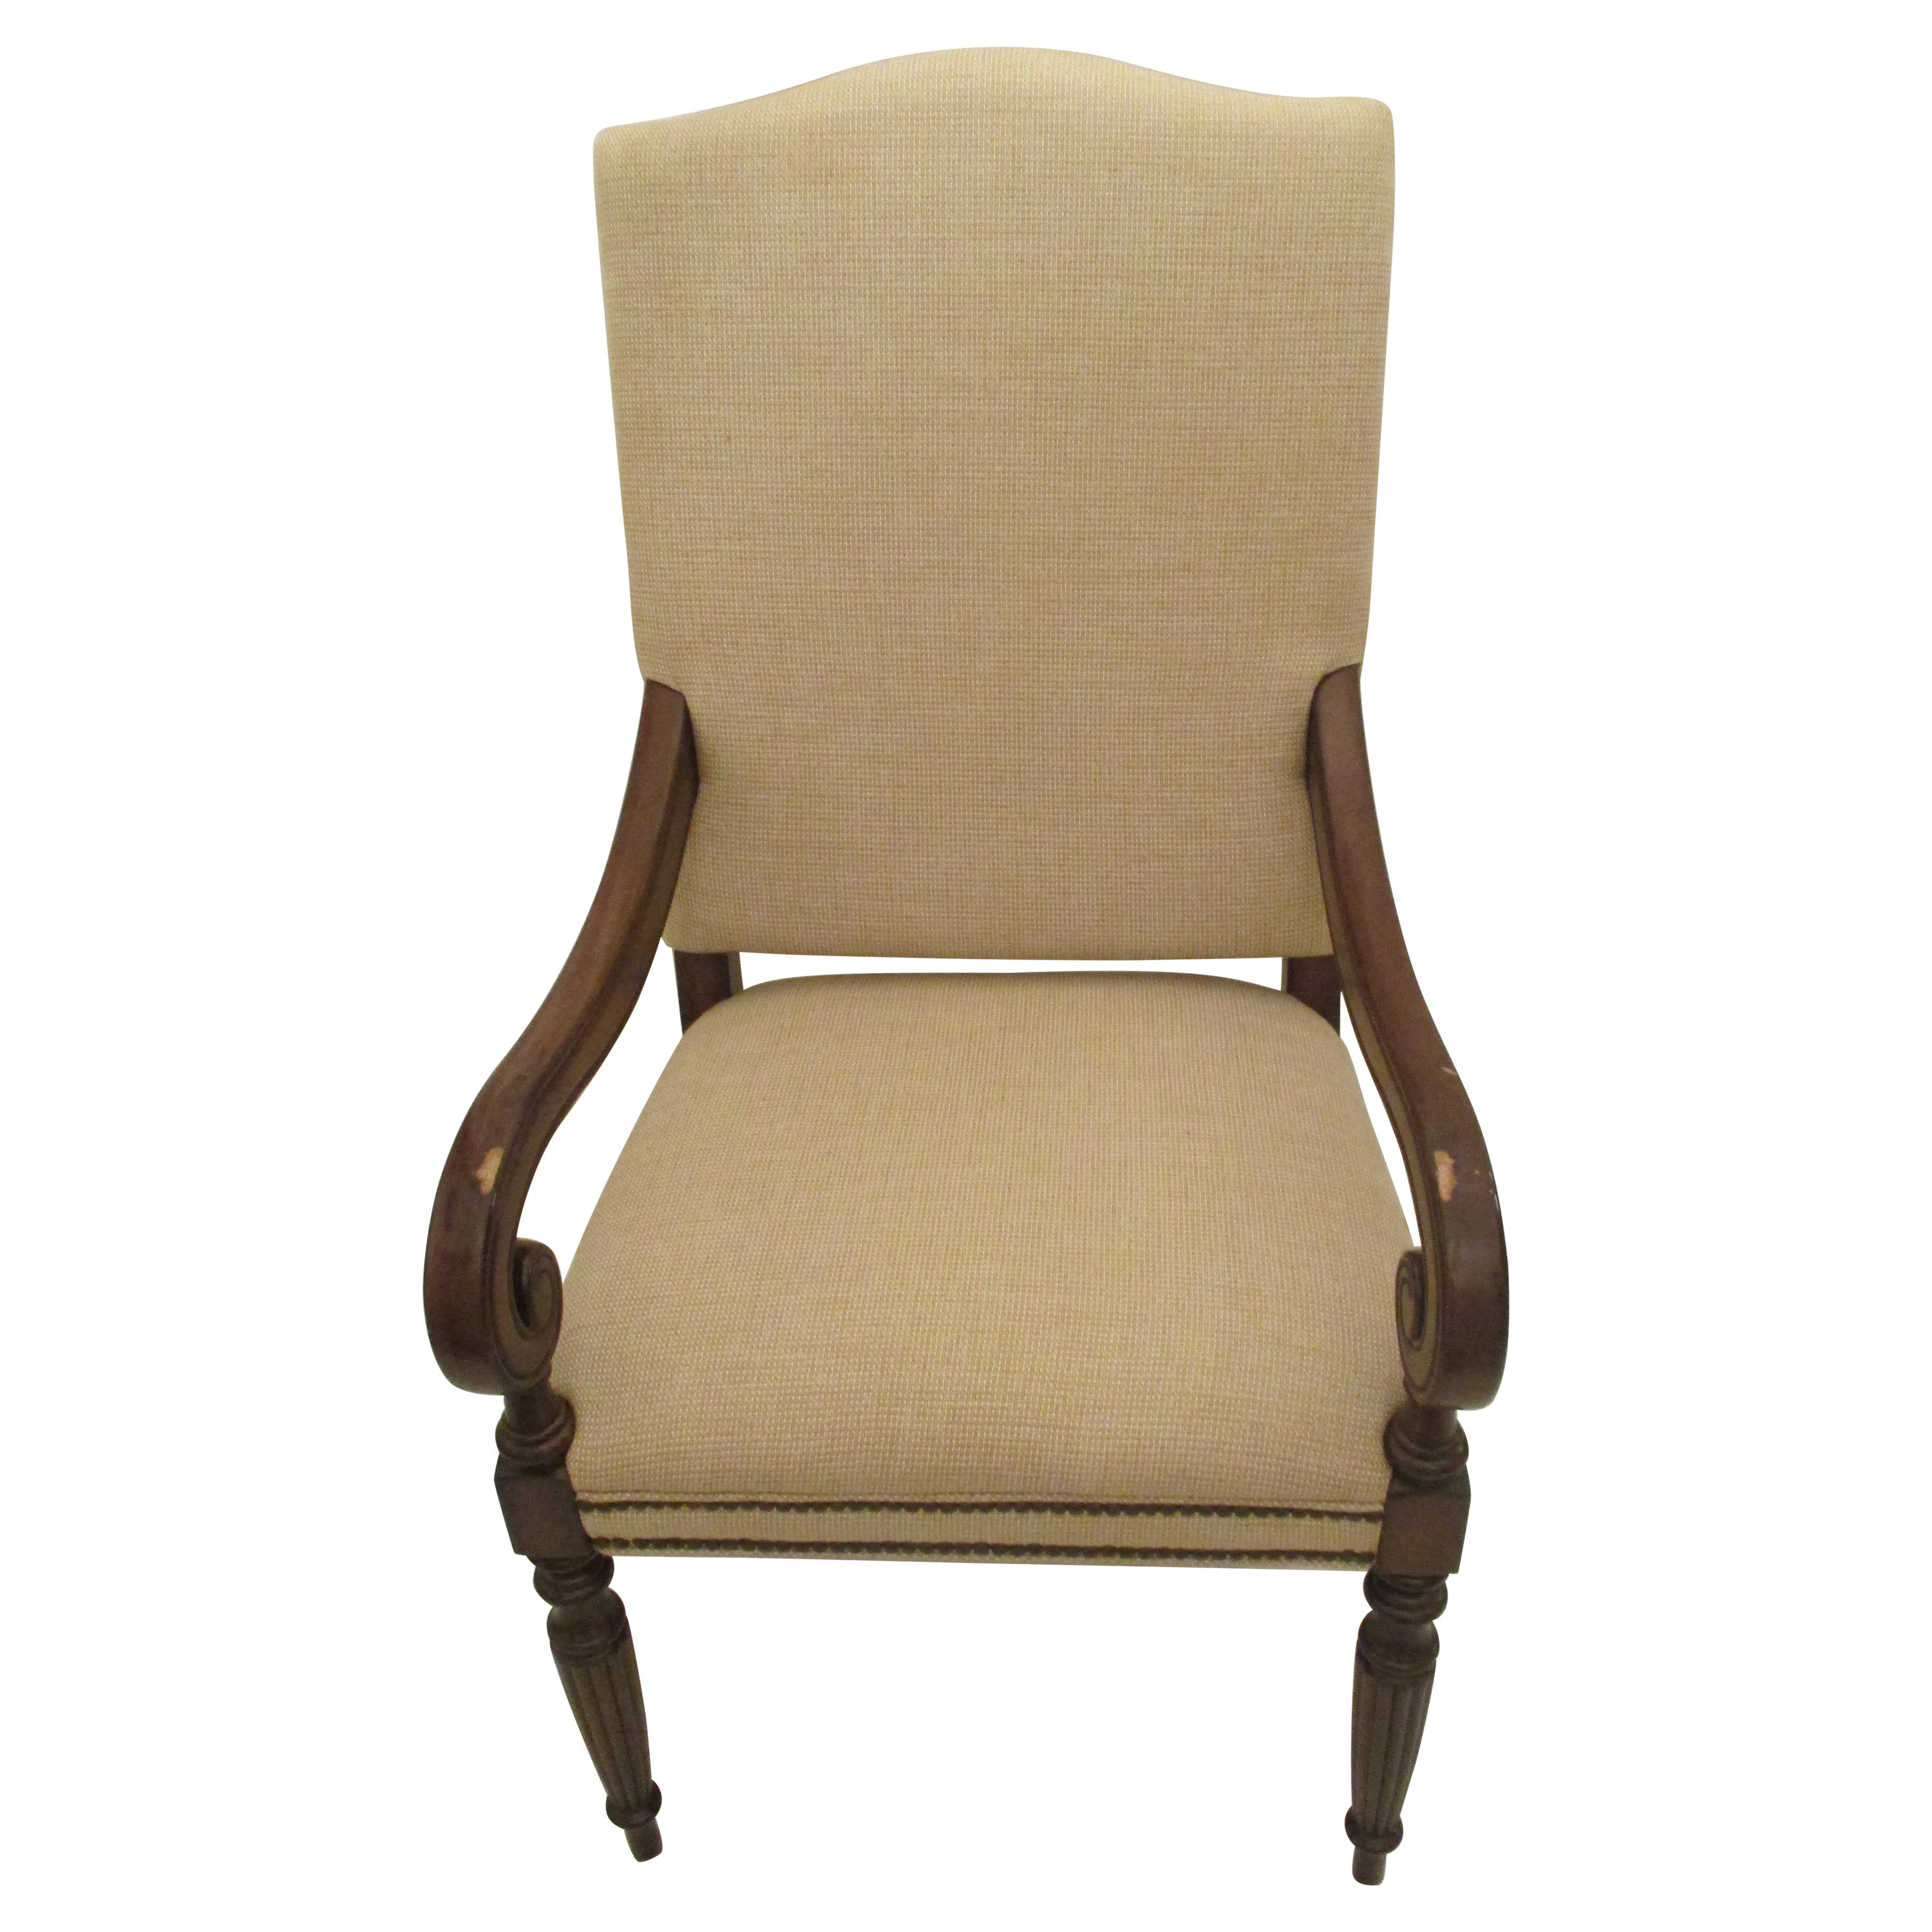 Upholstered Side Chair with Nailhead Trim